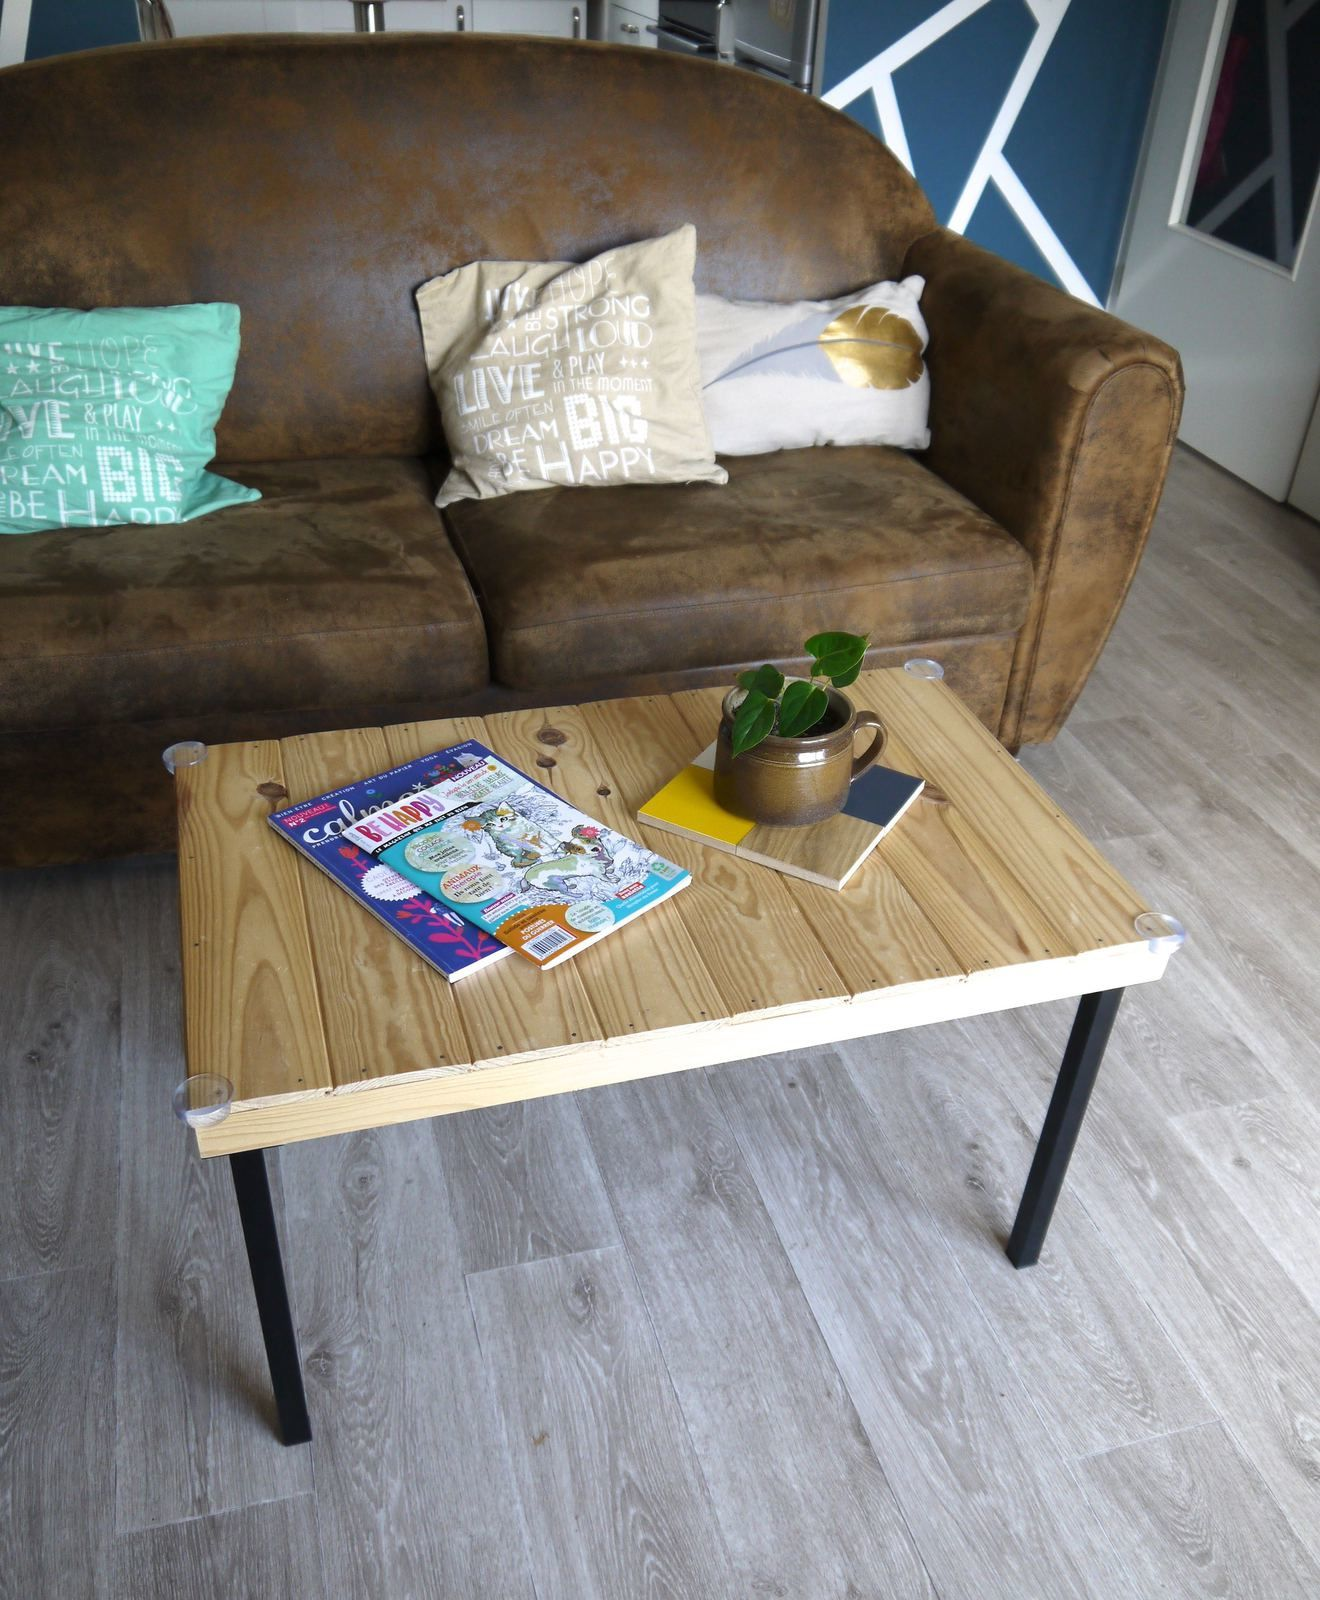 Table Basse A Fabriquer fabriquer une table basse - article diy - adeline alias ada